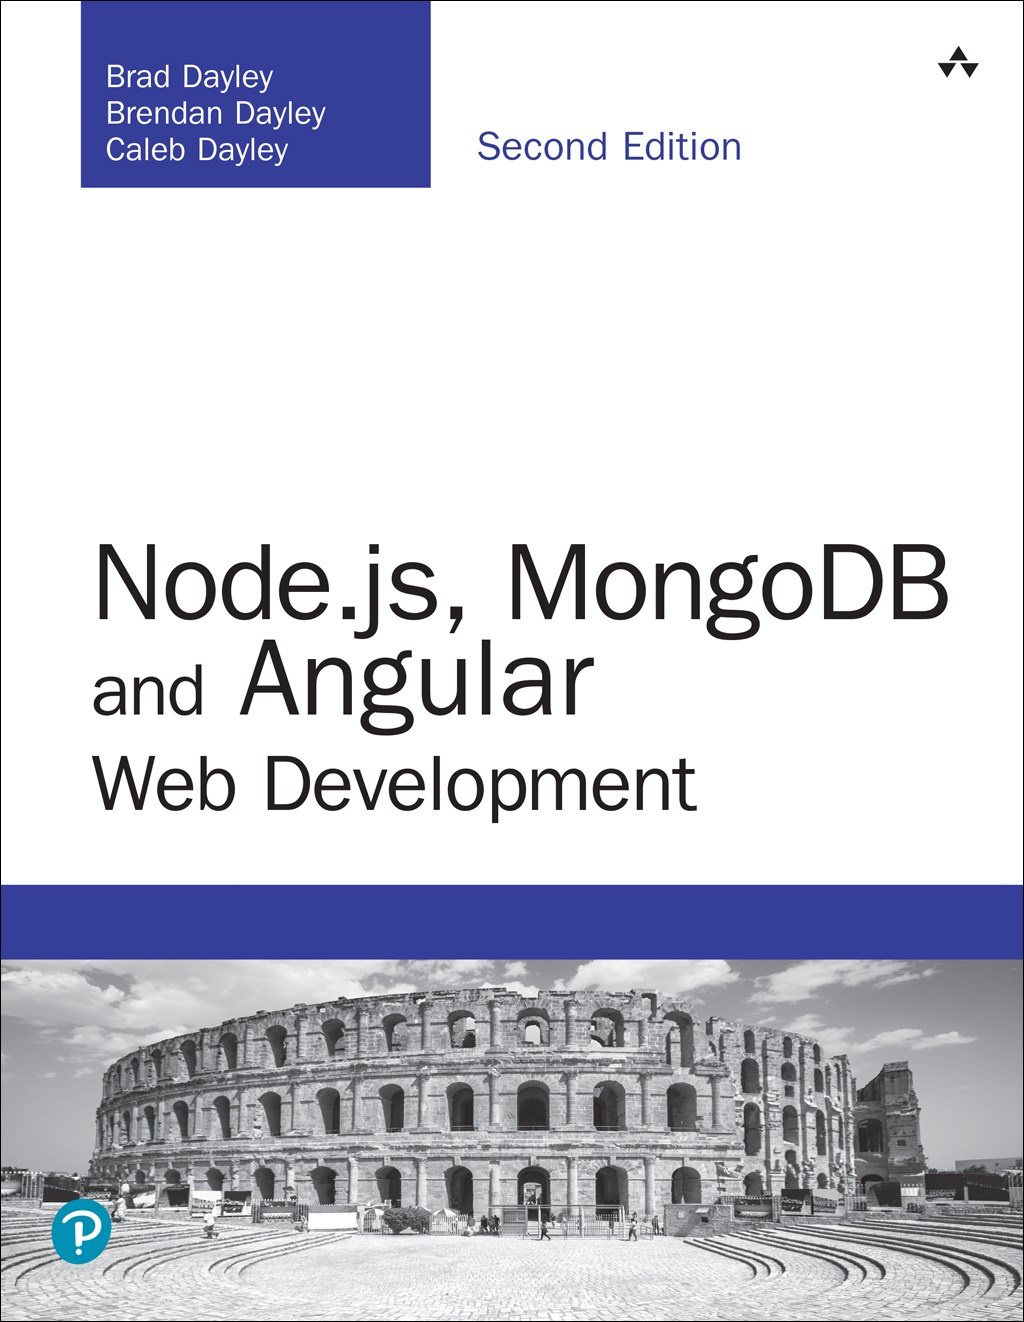 Node.js, MongoDB and Angular Web Development: The definitive guide to using the MEAN stack to build web applications, 2nd Edition